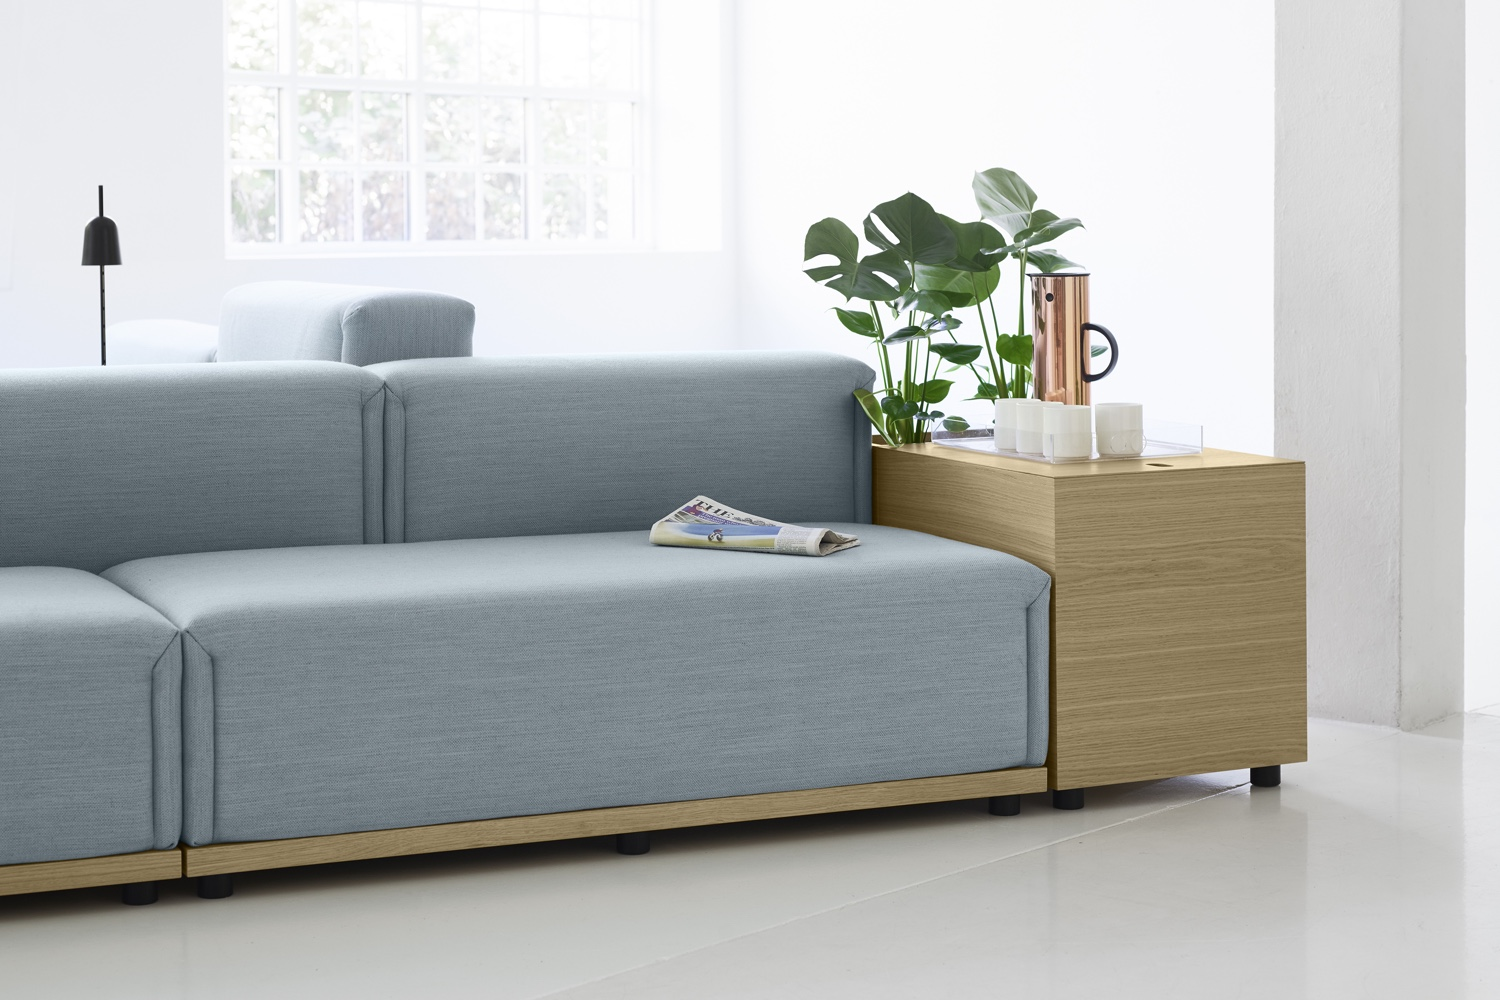 sofa furniture design images sectional discount 6 new sofas designs for cosy comfort